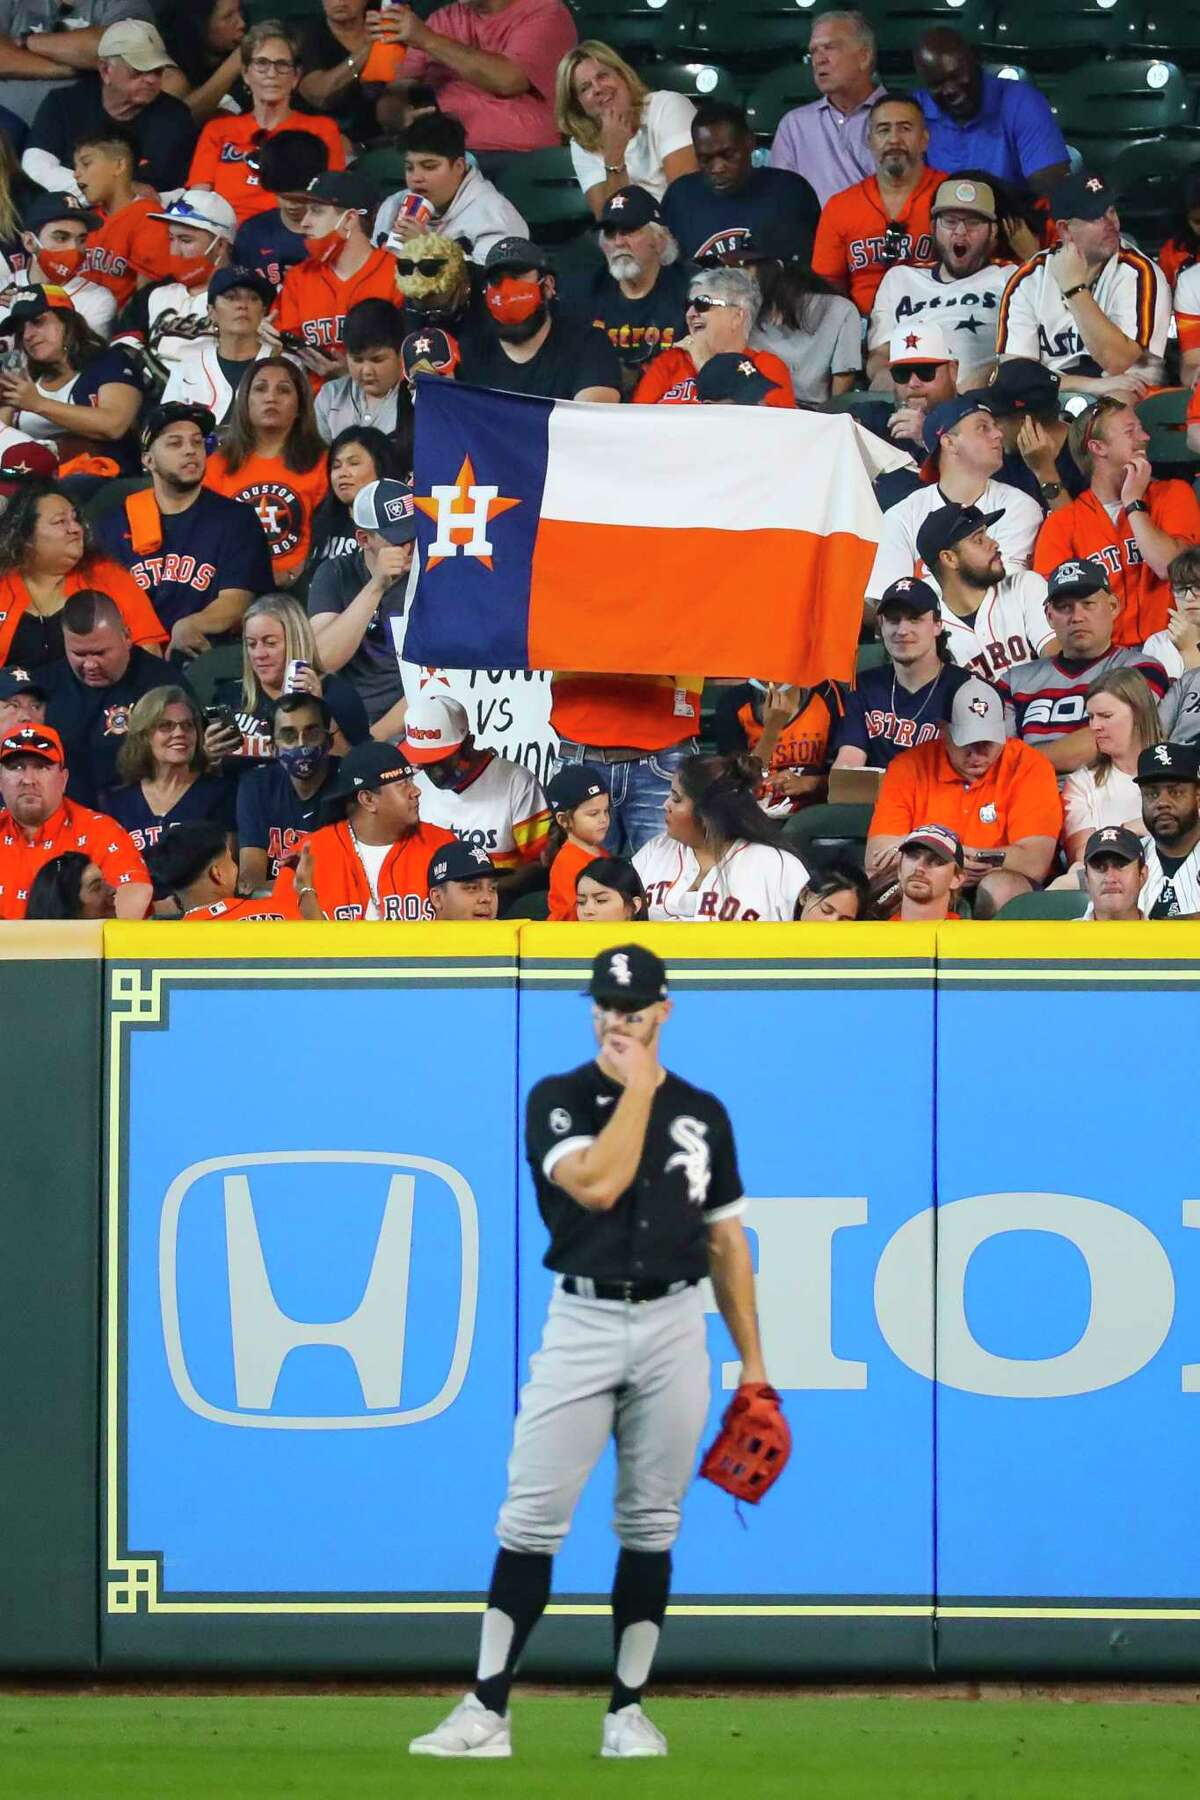 Astros fans cheer as Chicago White Sox right fielder Adam Engel (15) stands in right field during the third inning in Game 1 of the AL Division Series Thursday, Oct. 7, 2021, in Houston.